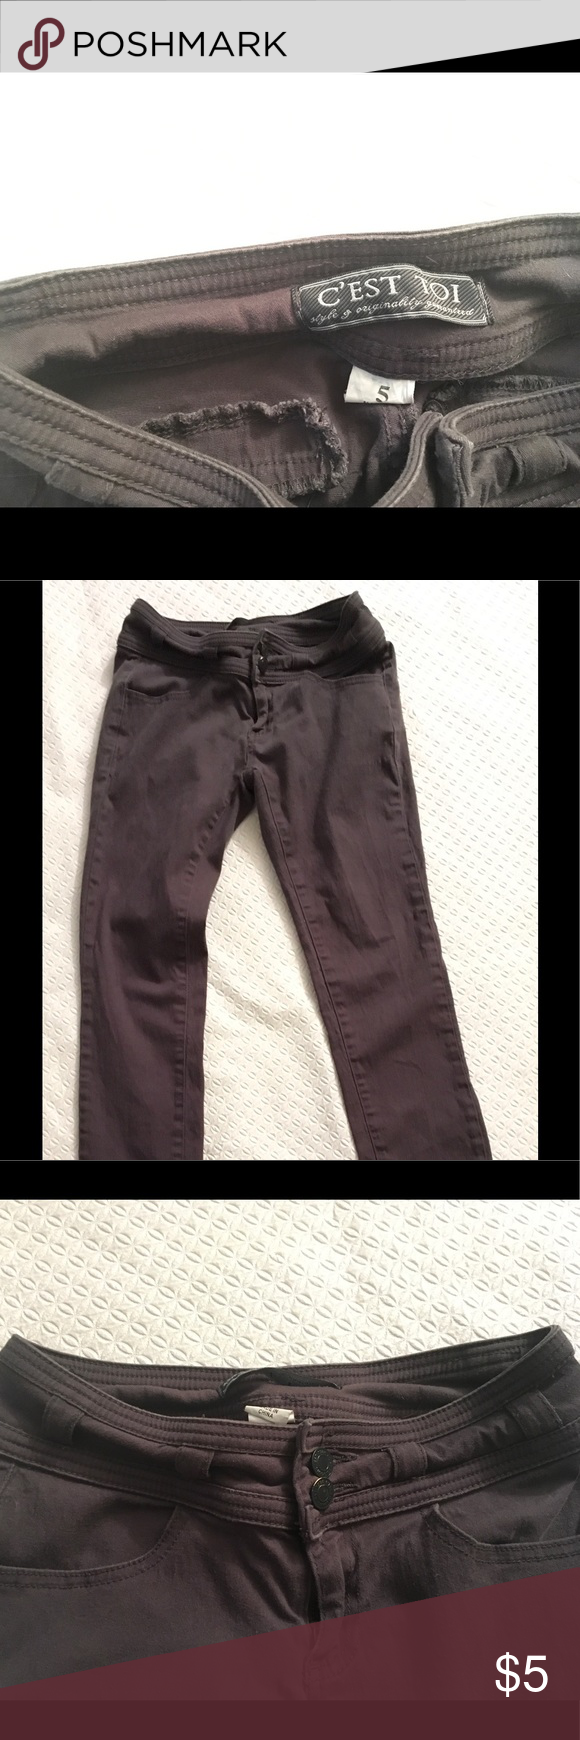 Cest Toi Dar Grey Skinny Jeans Dark Grey size 5 skinny jeans. These are a small size 5 but they do stretch with ease. Cest Toi company. These jeans will amplify any butt in a sexy dress code appropriate way, Cest Toi Jeans Skinny